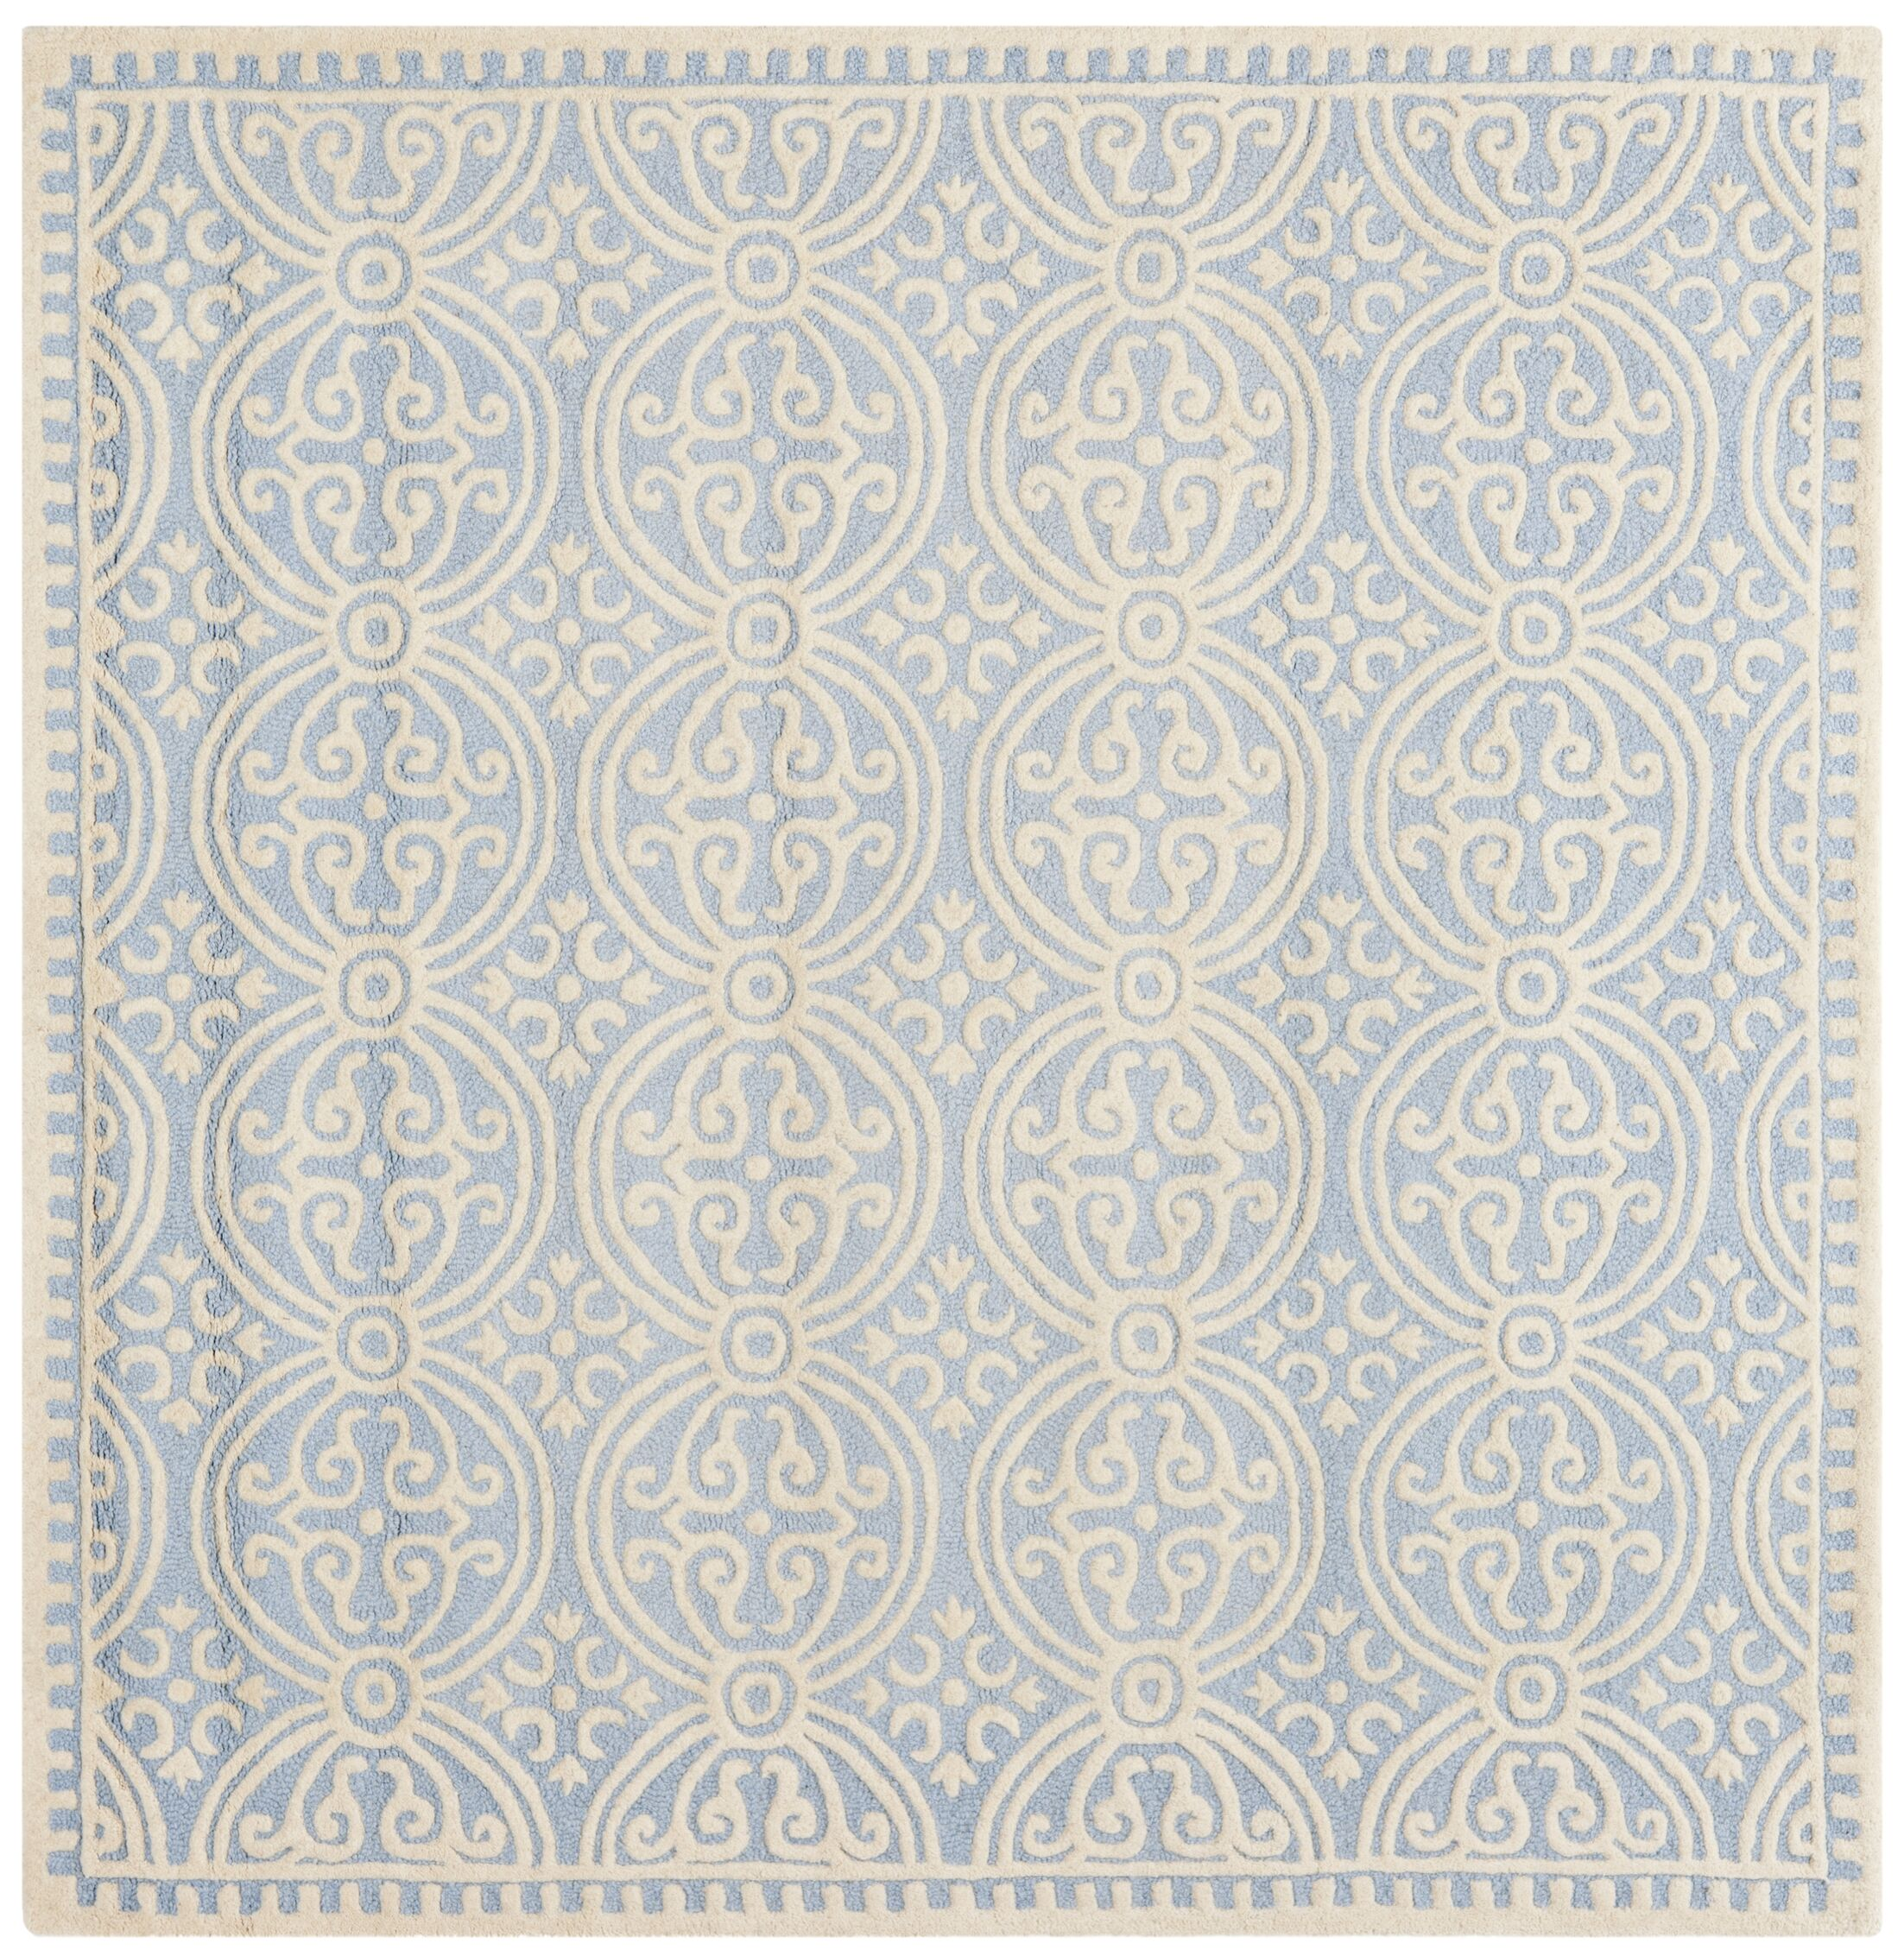 Martins Hand-Tufted Wool Light Blue/Ivory Area Rug Rug Size: Square 10'